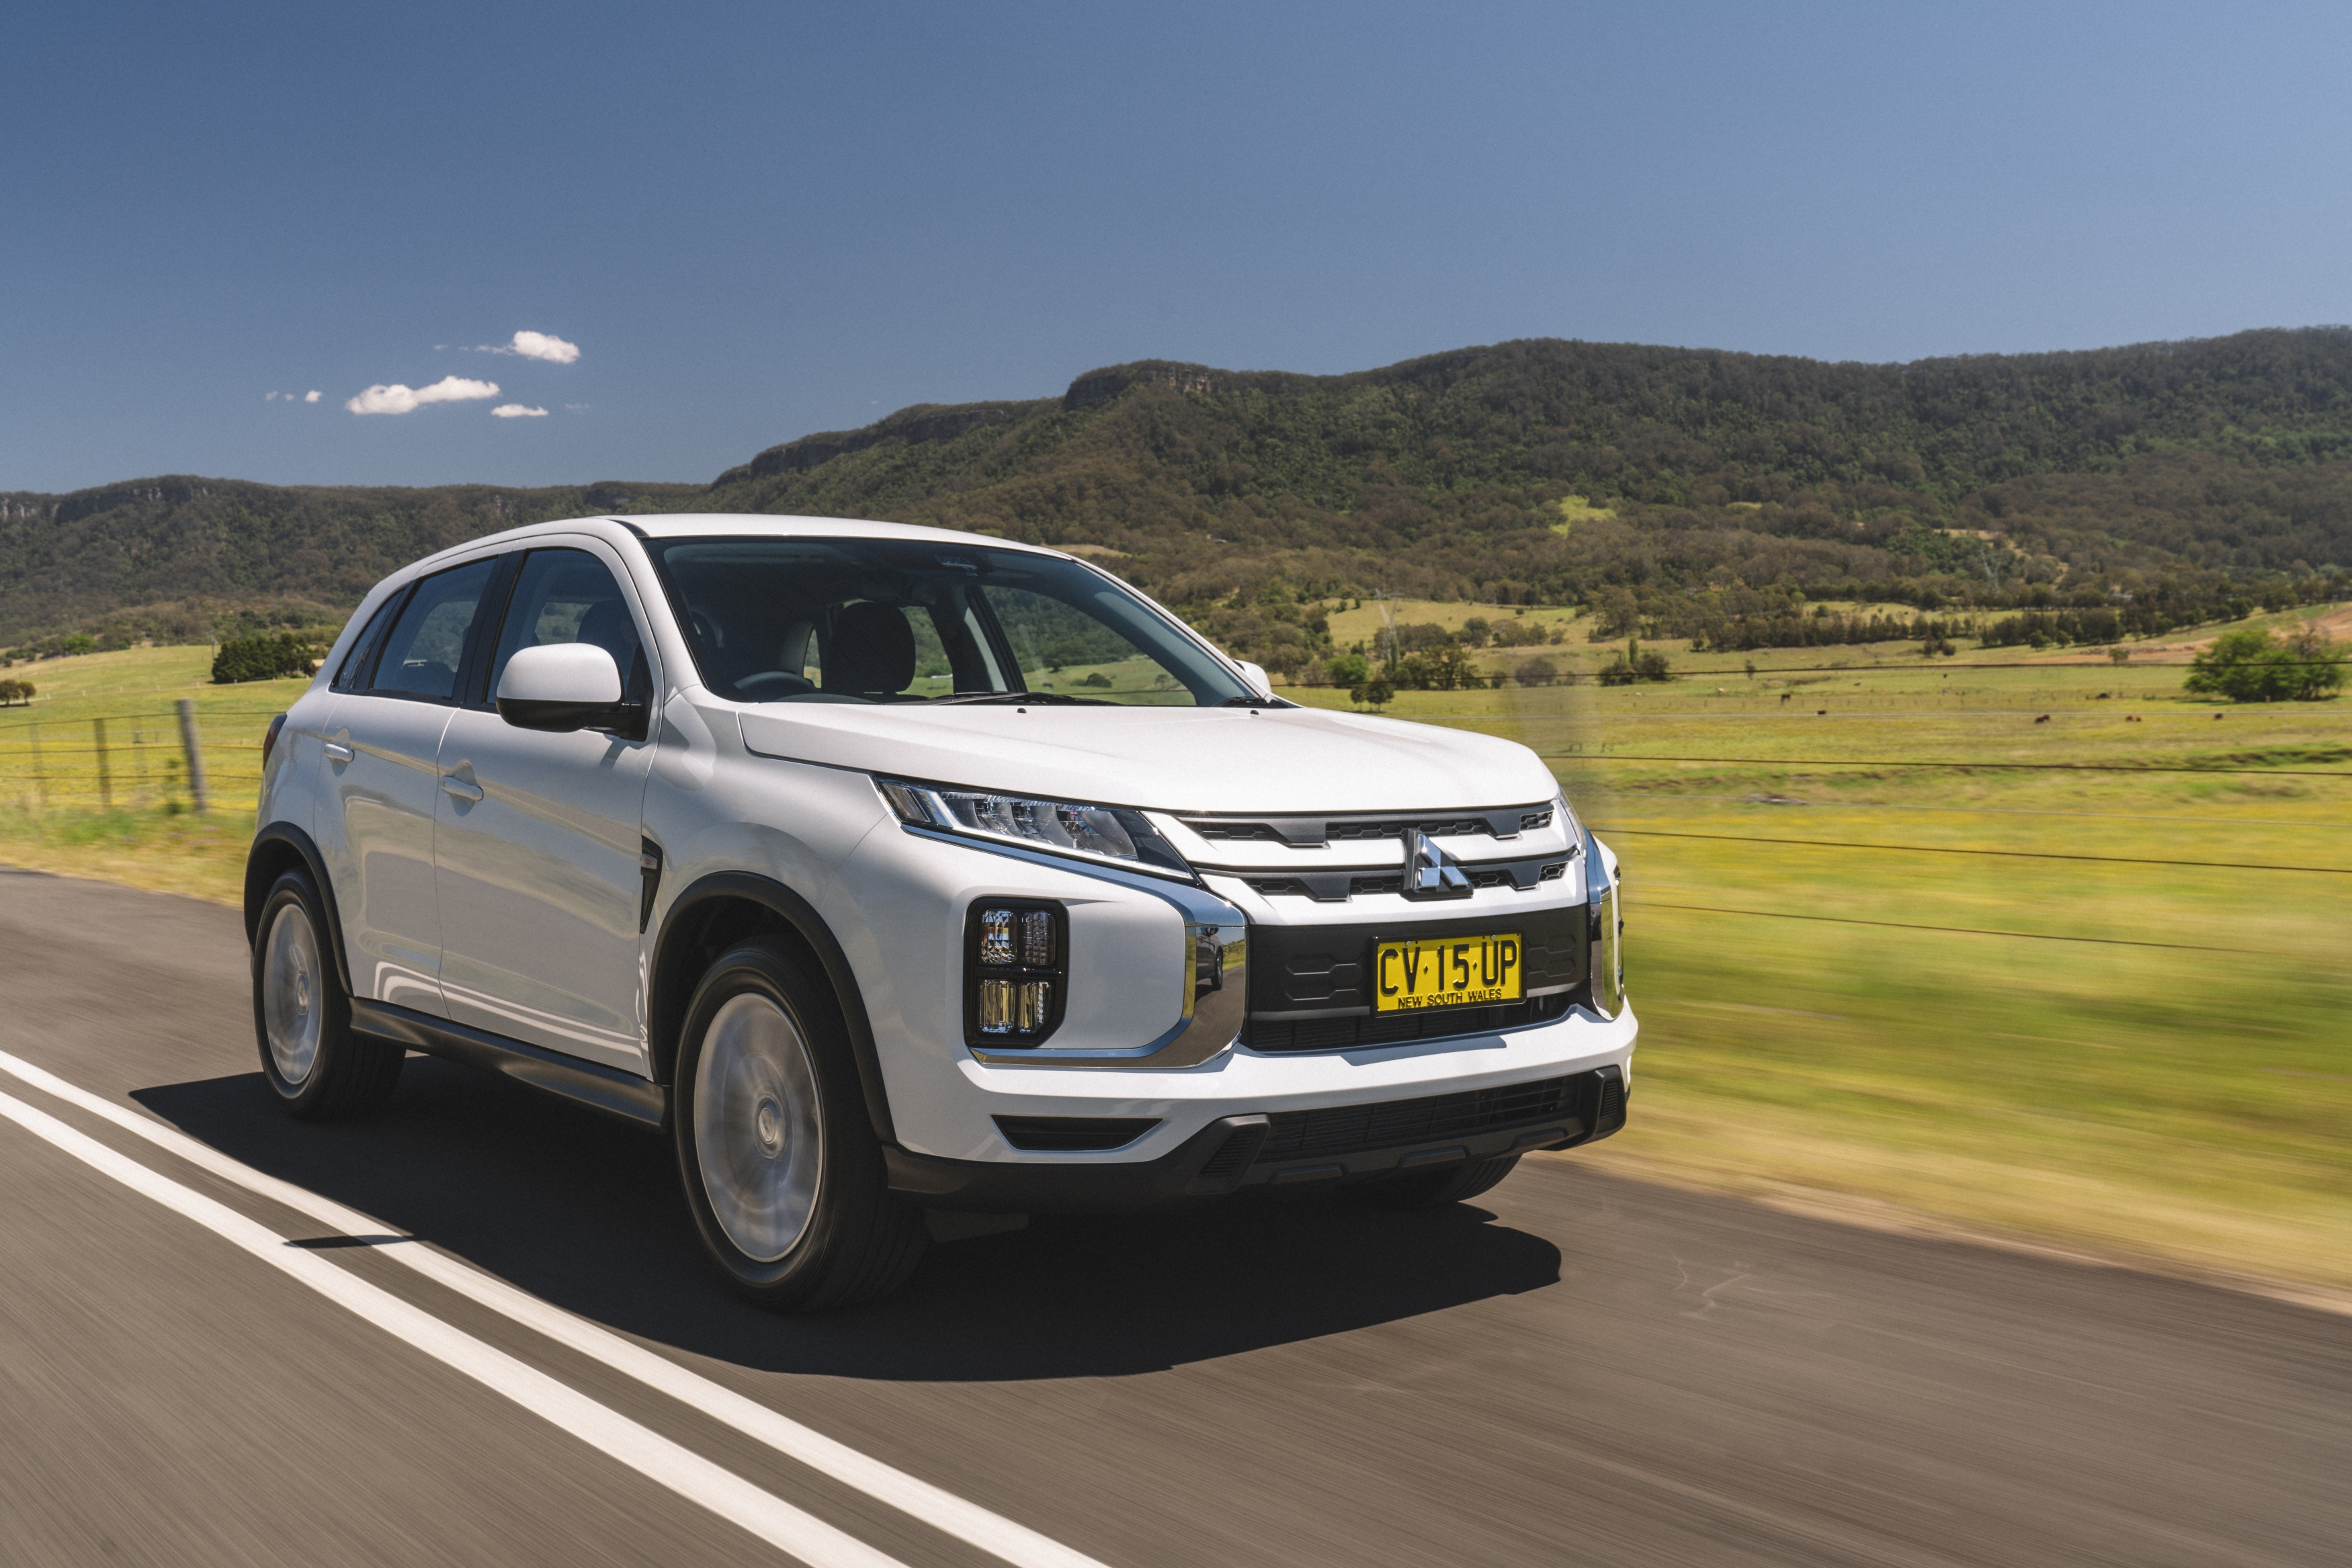 Mitsubishi's top-selling SUV under $40,000 – the ASX, recently upgraded.